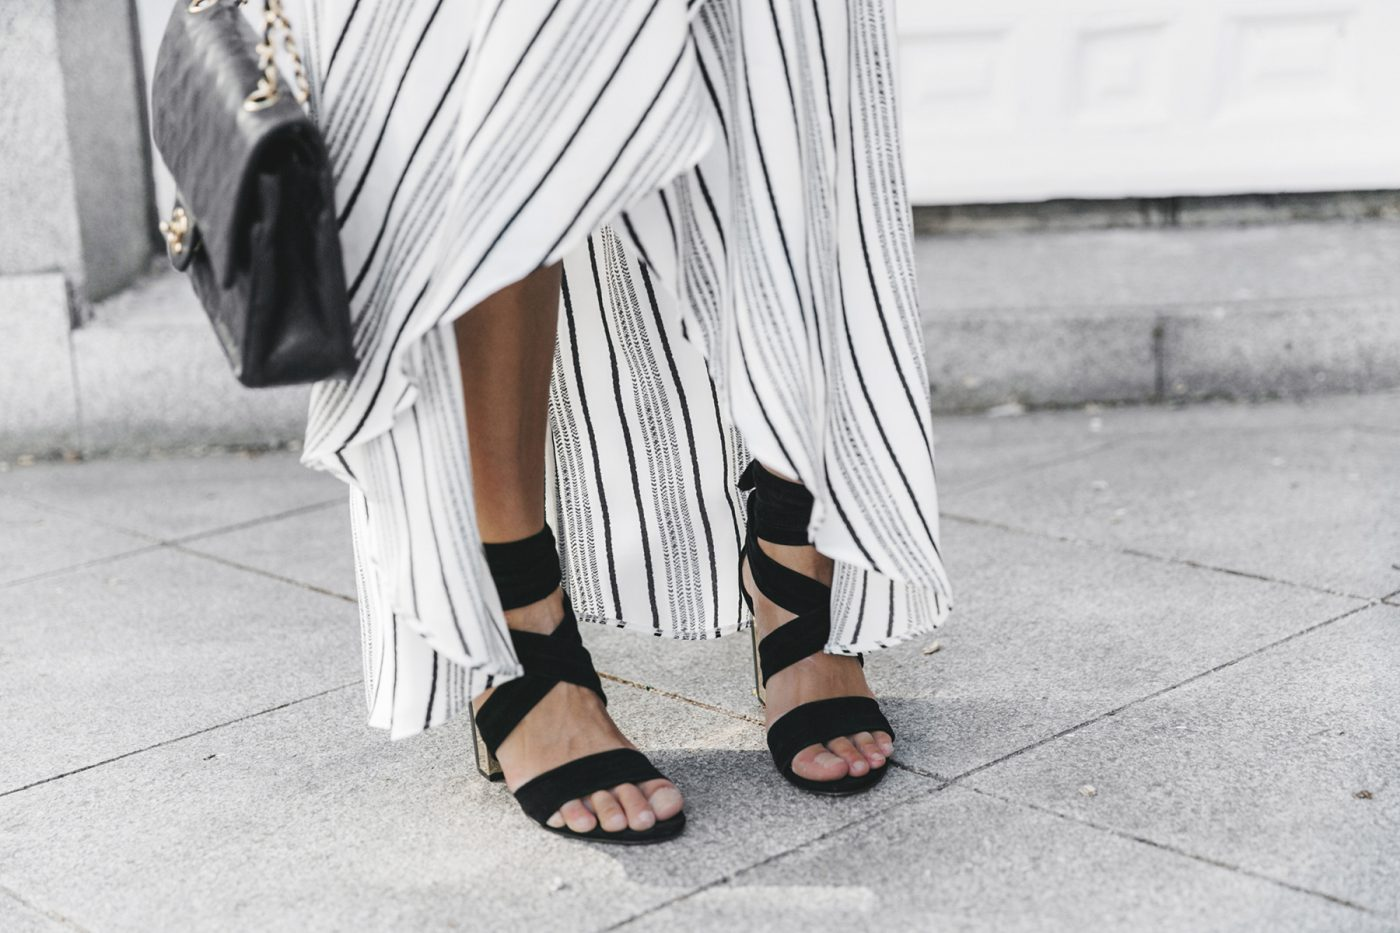 River_Island-El_Imparcial-Striped_SKirt-Off_Shoulders_Top-Lace_Up_Sandals-CHanel_Vintage_Bag-26